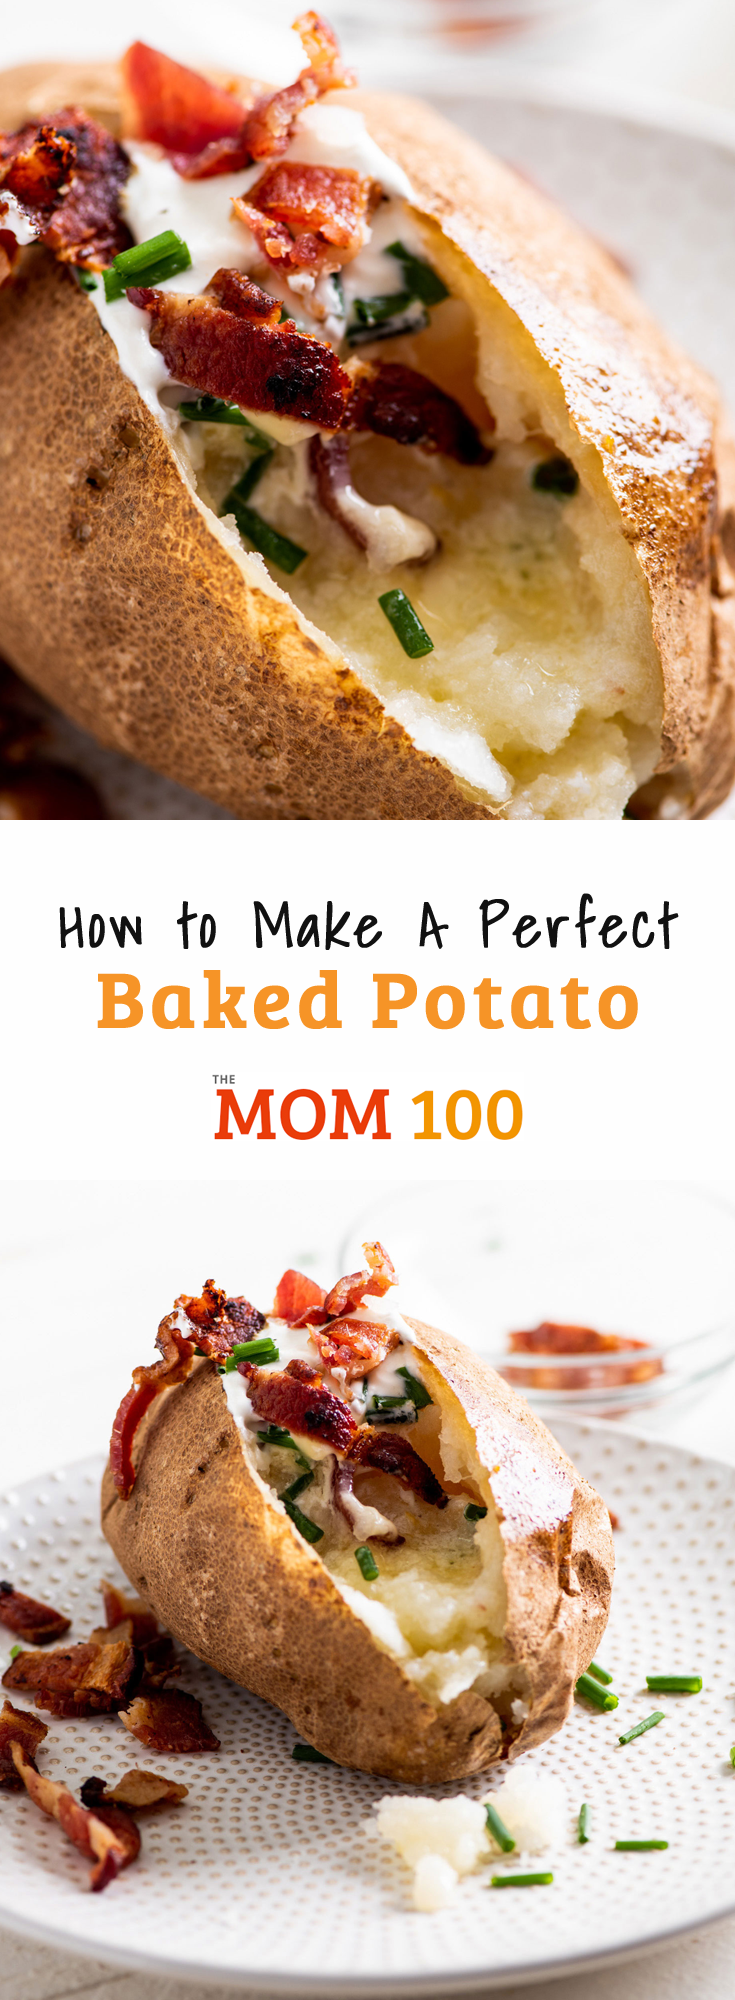 How to Make a Perfect Baked Potato: Easy step-by-step instructions (and photos) for getting a great baked potato every time.